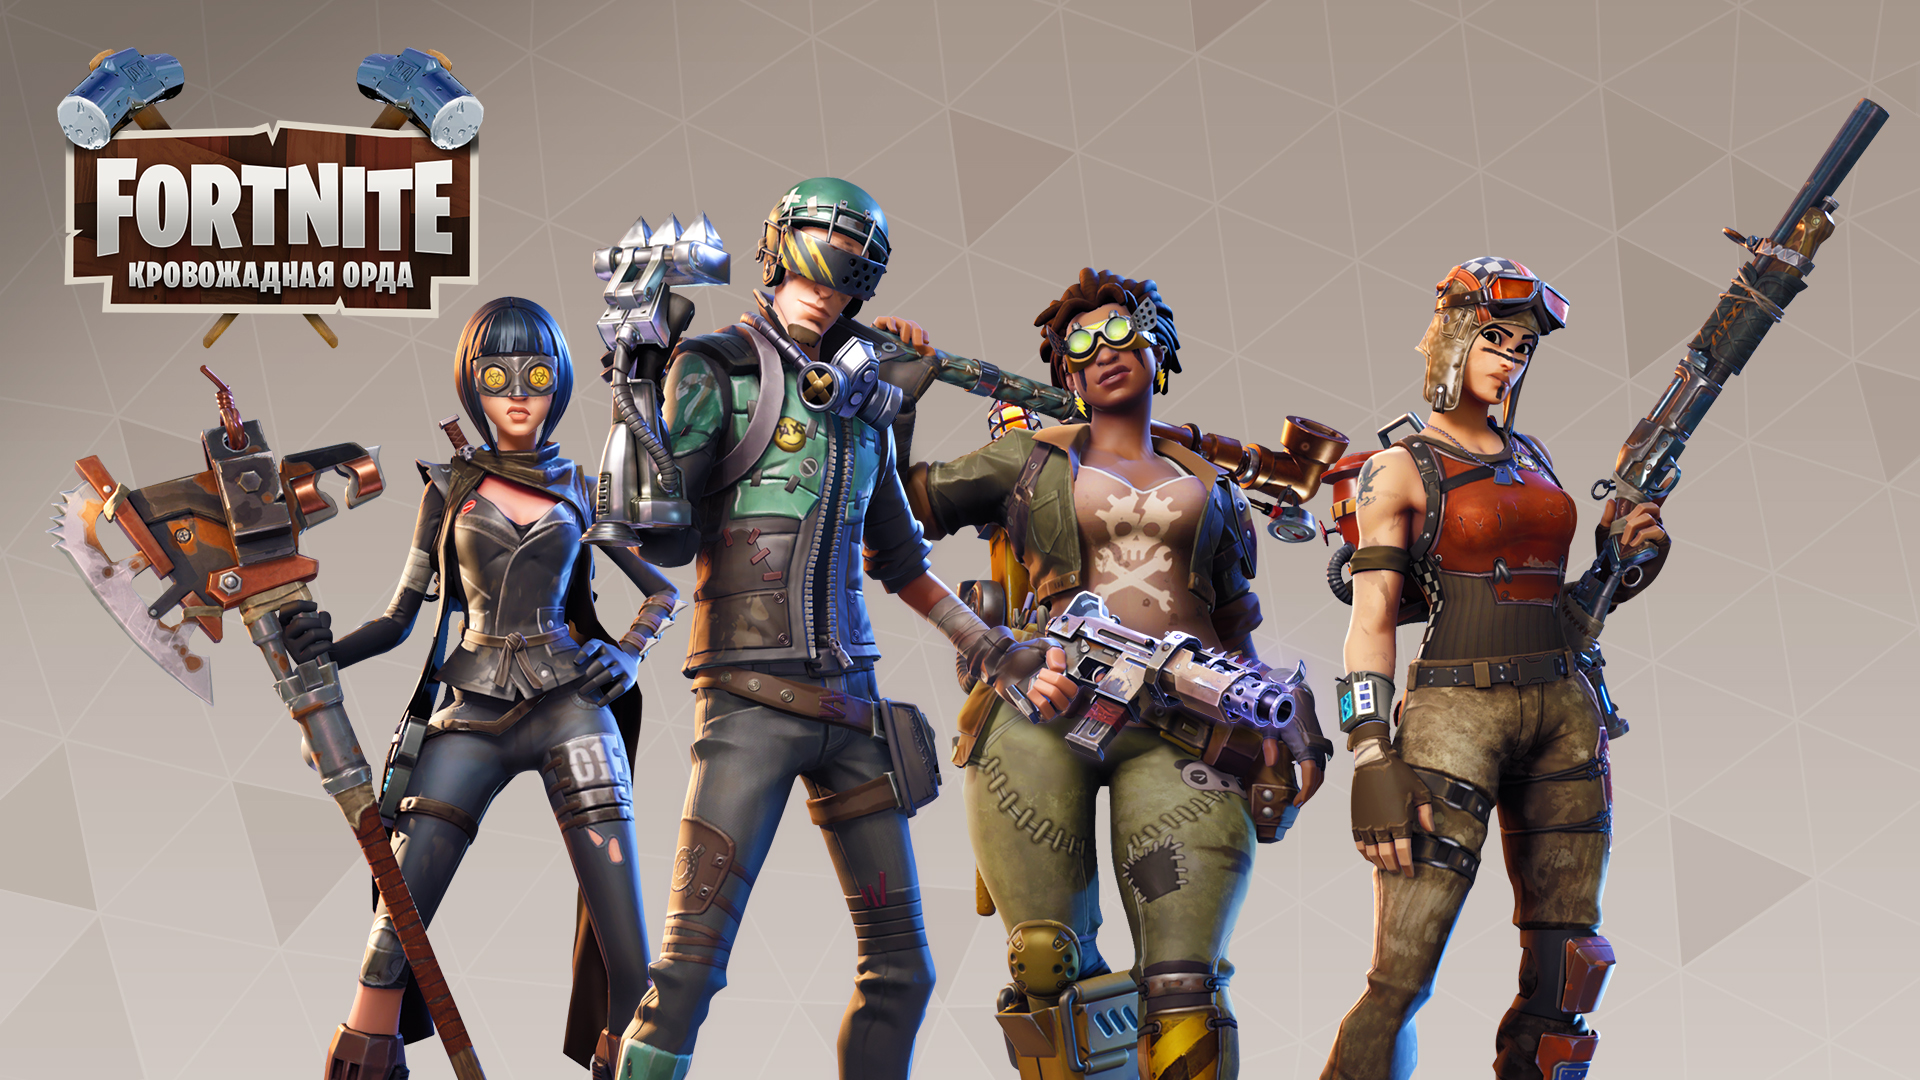 Fortnite%2Fblog%2Fea-1-7-patch-notes%2FRU-HB-Heroes-1920x1080-f902bdff25c7eb26e99c544e8c6964692ba6f3c8